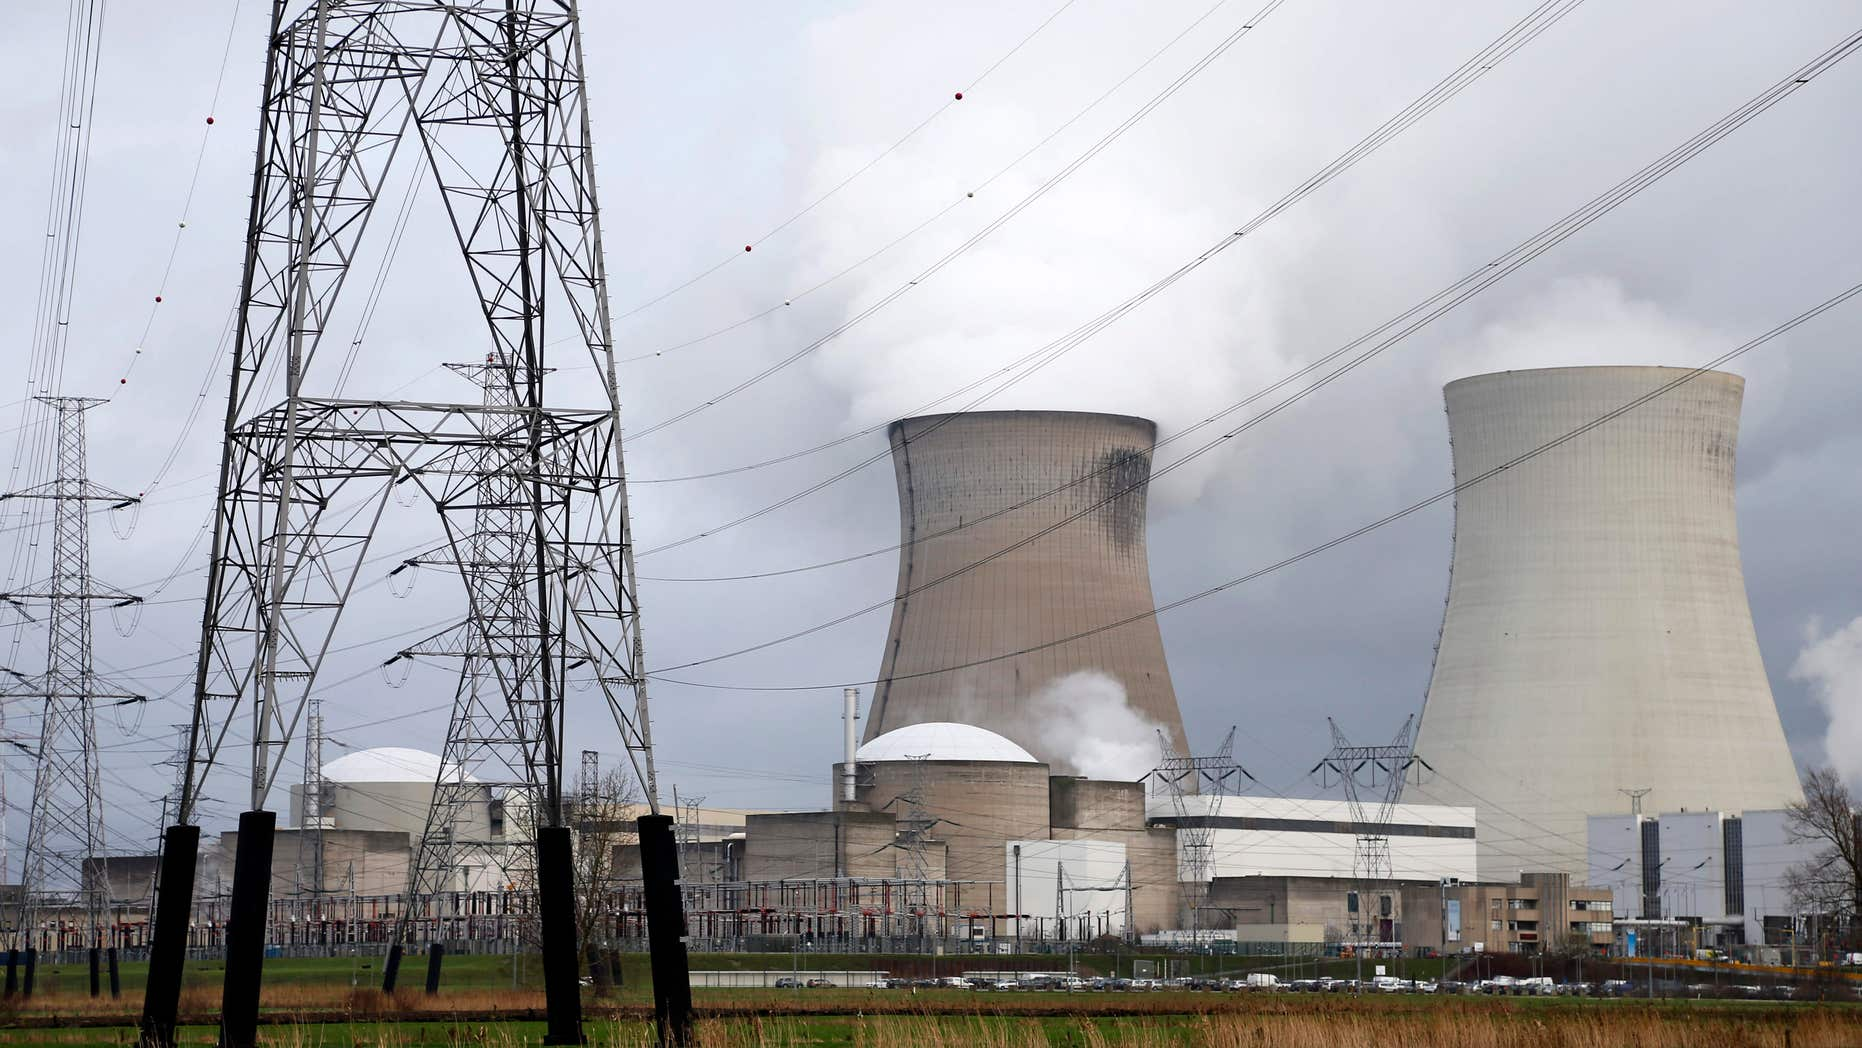 Jan. 4, 2016: High-voltage power lines are seen next to cooling towers of Doel's nuclear plant of Electrabel, the Belgian unit of French company Engie, former GDF Suez, in Doel near Antwerp, Belgium